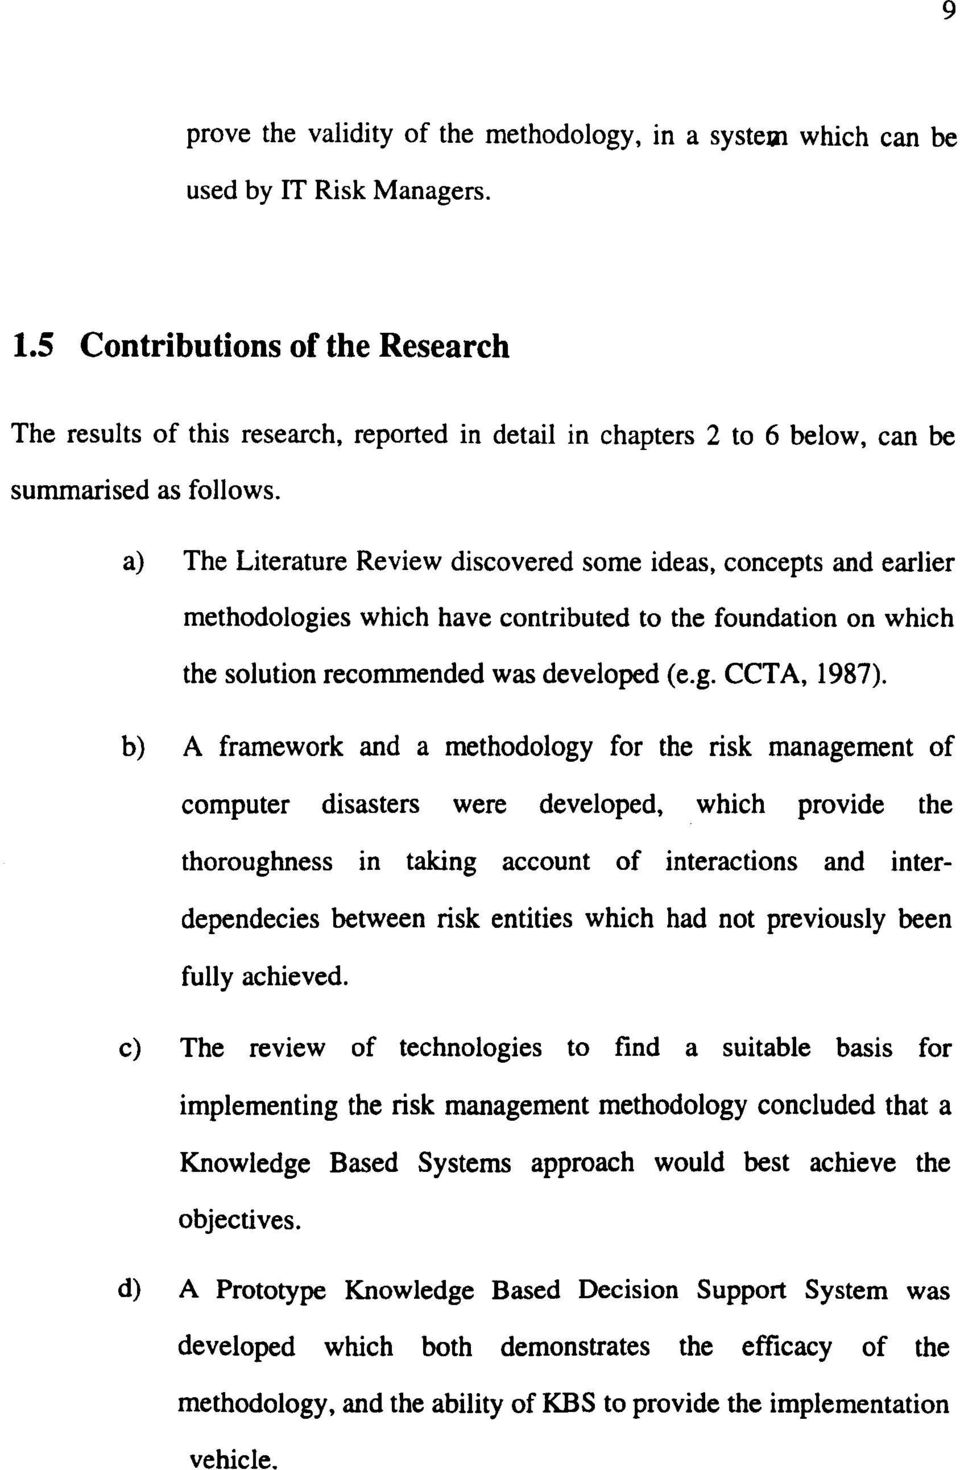 a) The Literature Review discovered some ideas, concepts and earlier methodologies which have contributed to the foundation on which the solution recommended was developed (e.g. CCT A, 1987).